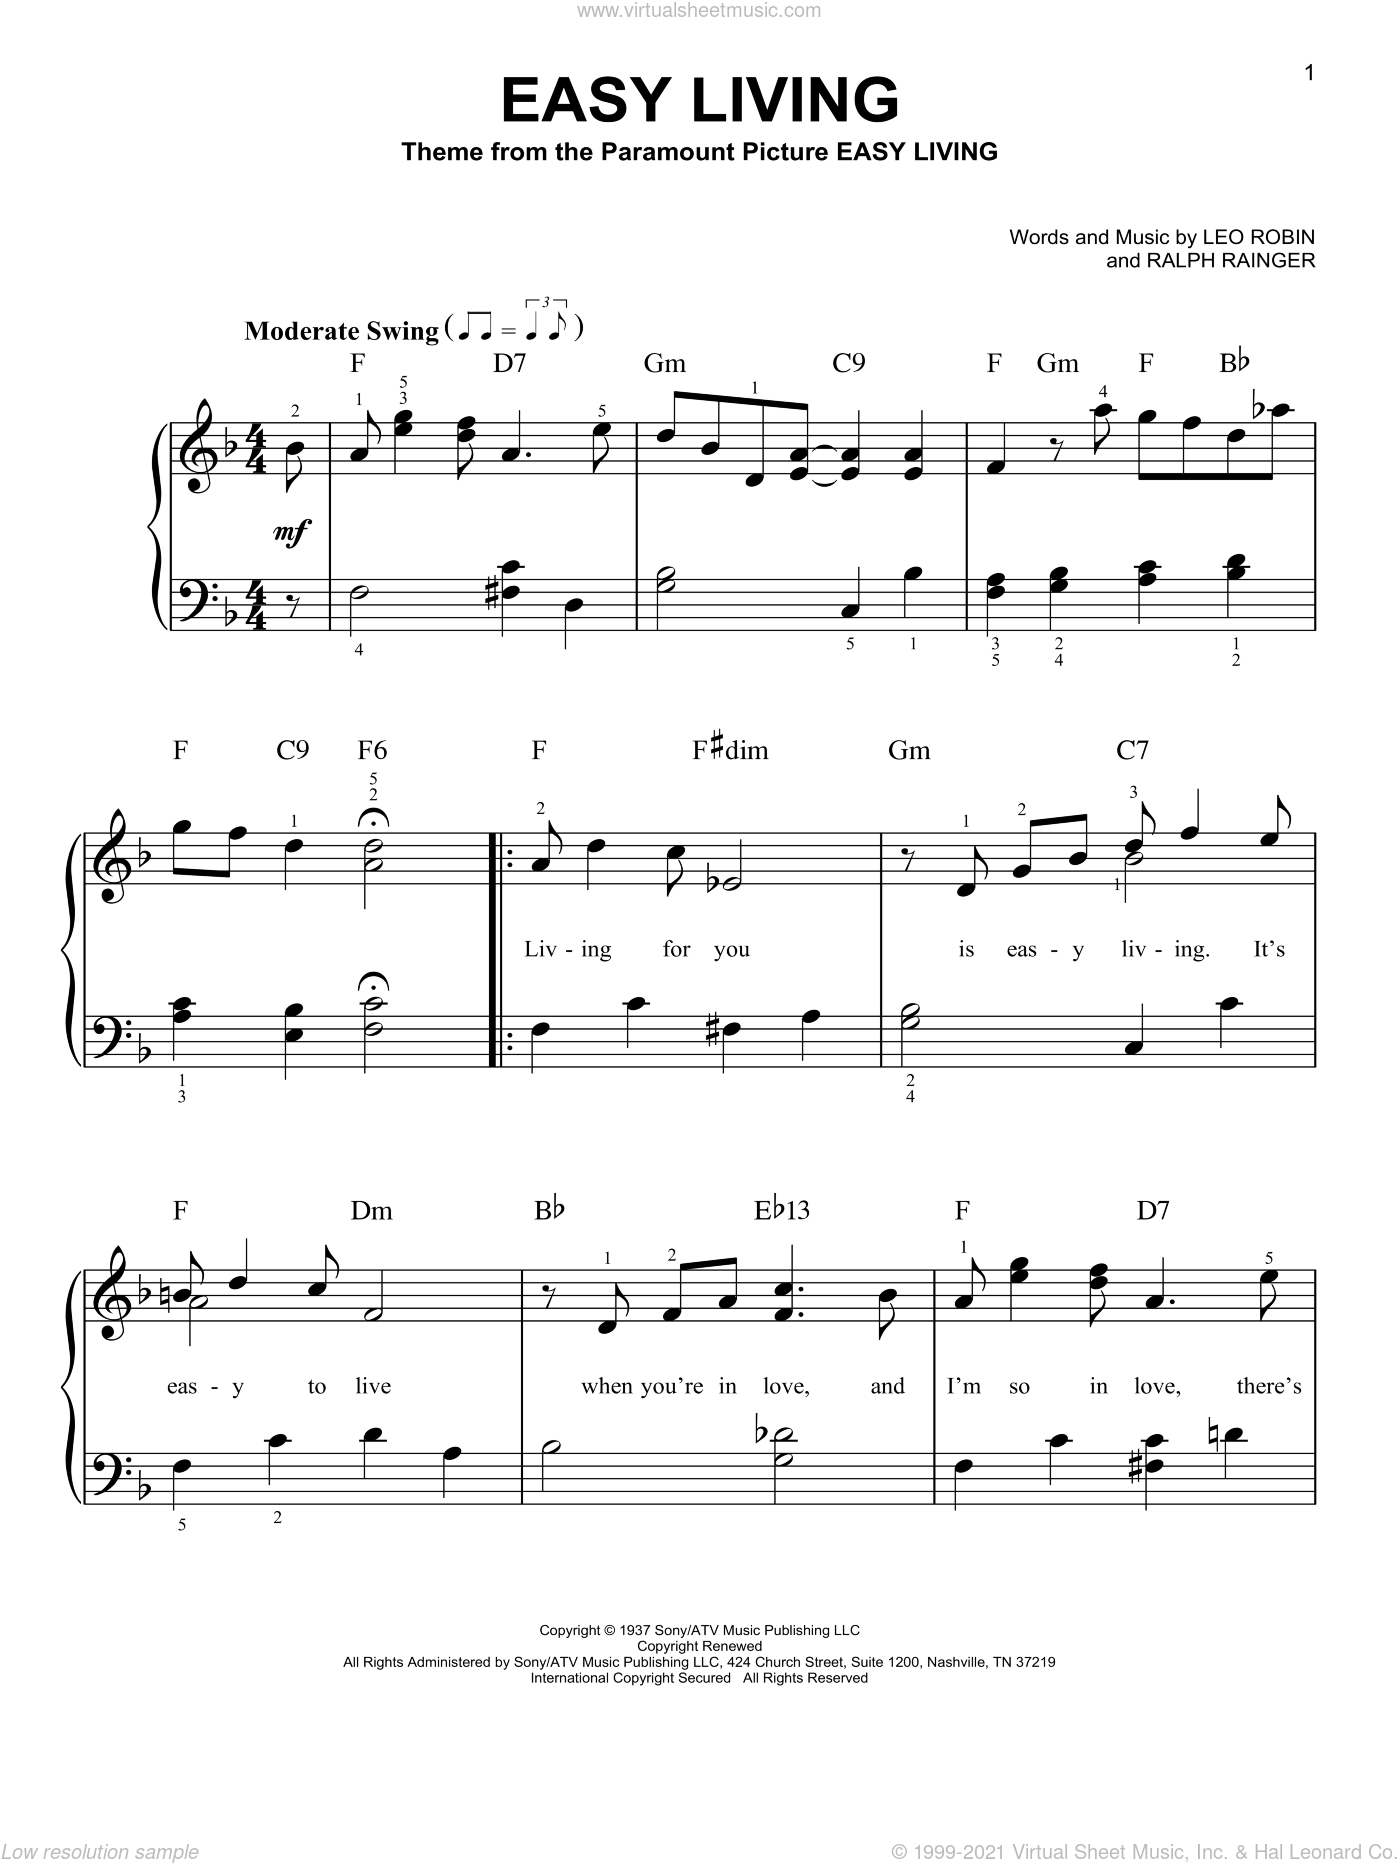 Easy Living, (easy) sheet music for piano solo by Billie Holiday, Leo Robin and Ralph Rainger, easy skill level